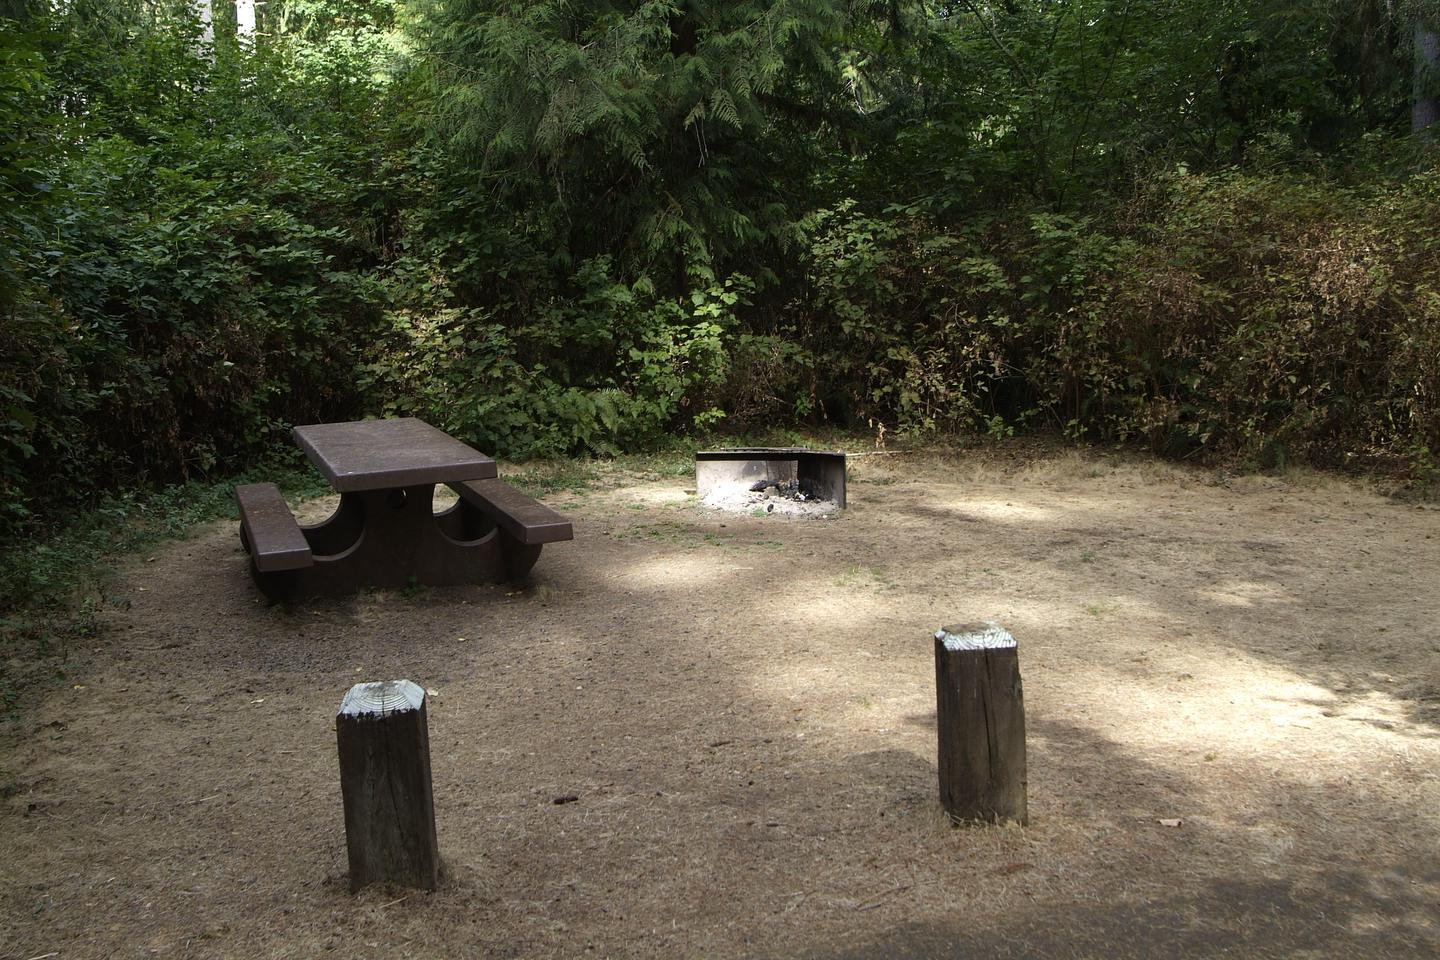 Camp site 4 has a table and fire ring. Camp site 4 table and fire ring.